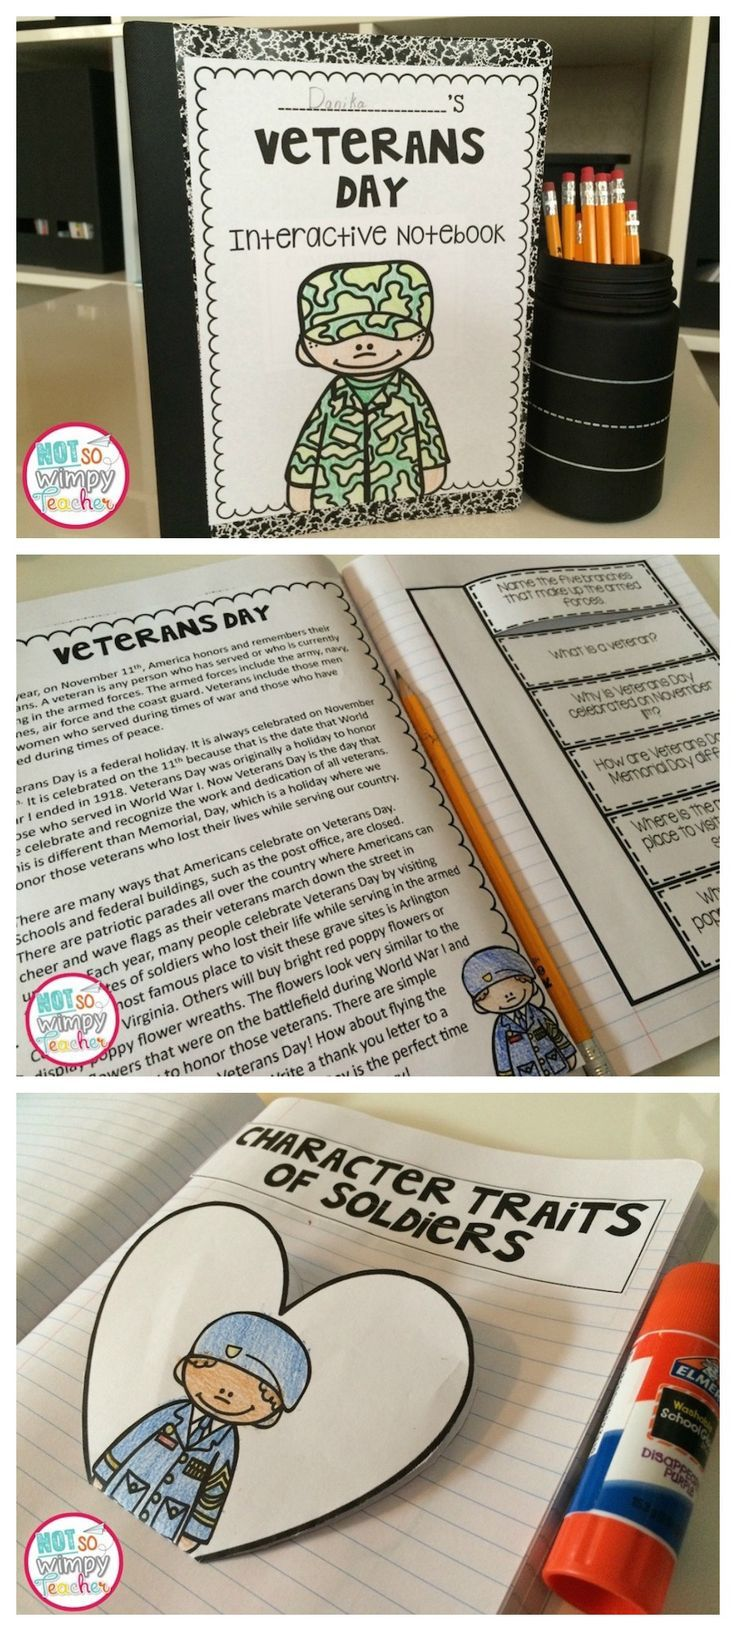 Veterans Day Interactive Notebook | TpT Language Arts Lessons ...